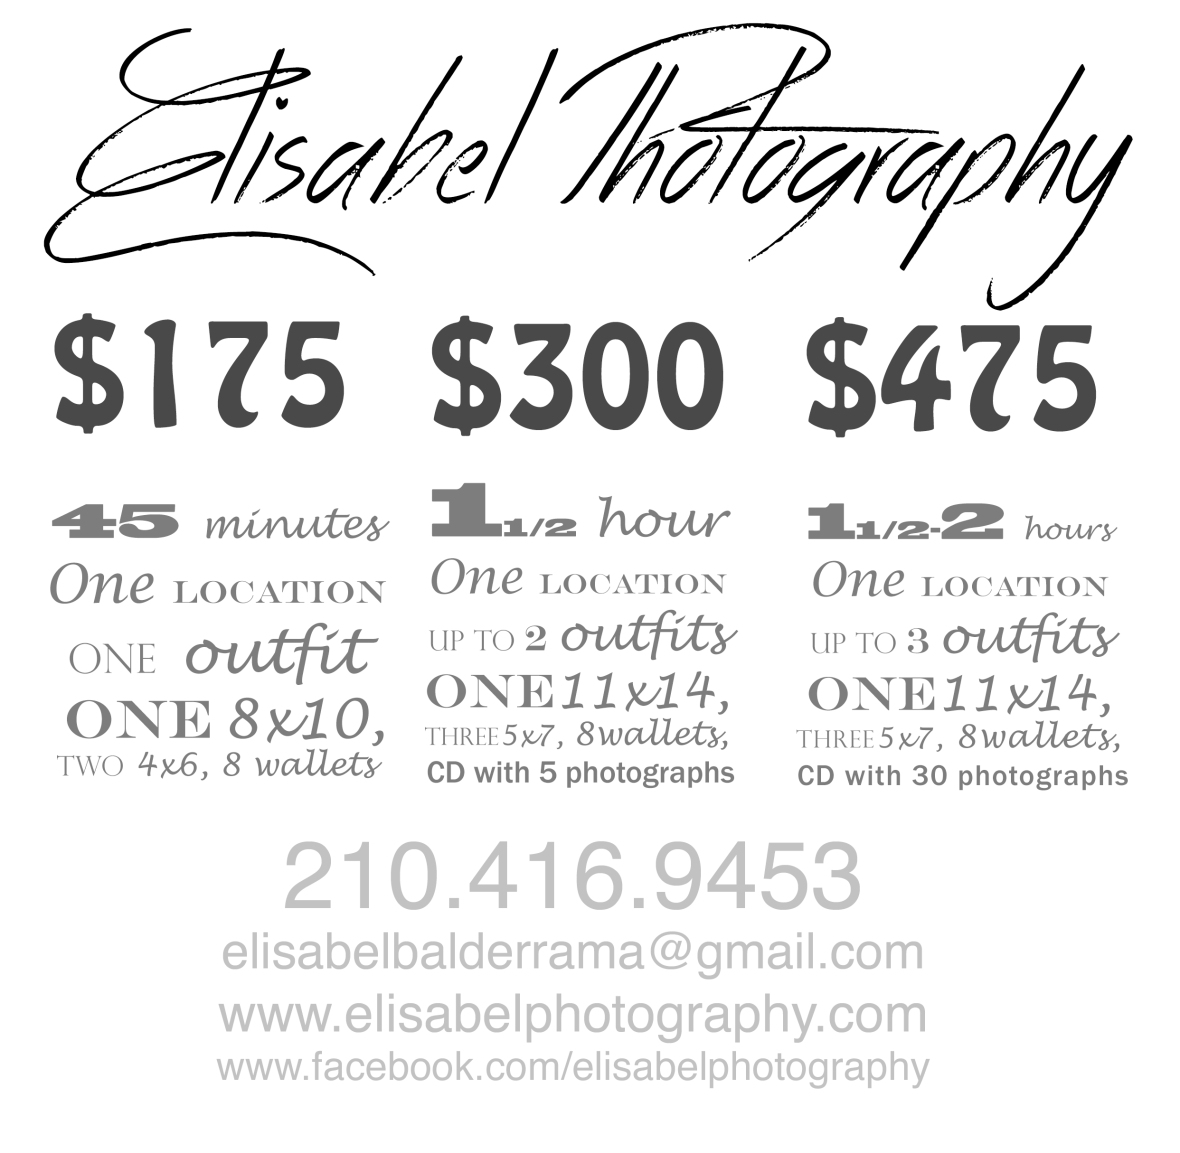 Portrait Pricing: Prices, Packages, And Promotions